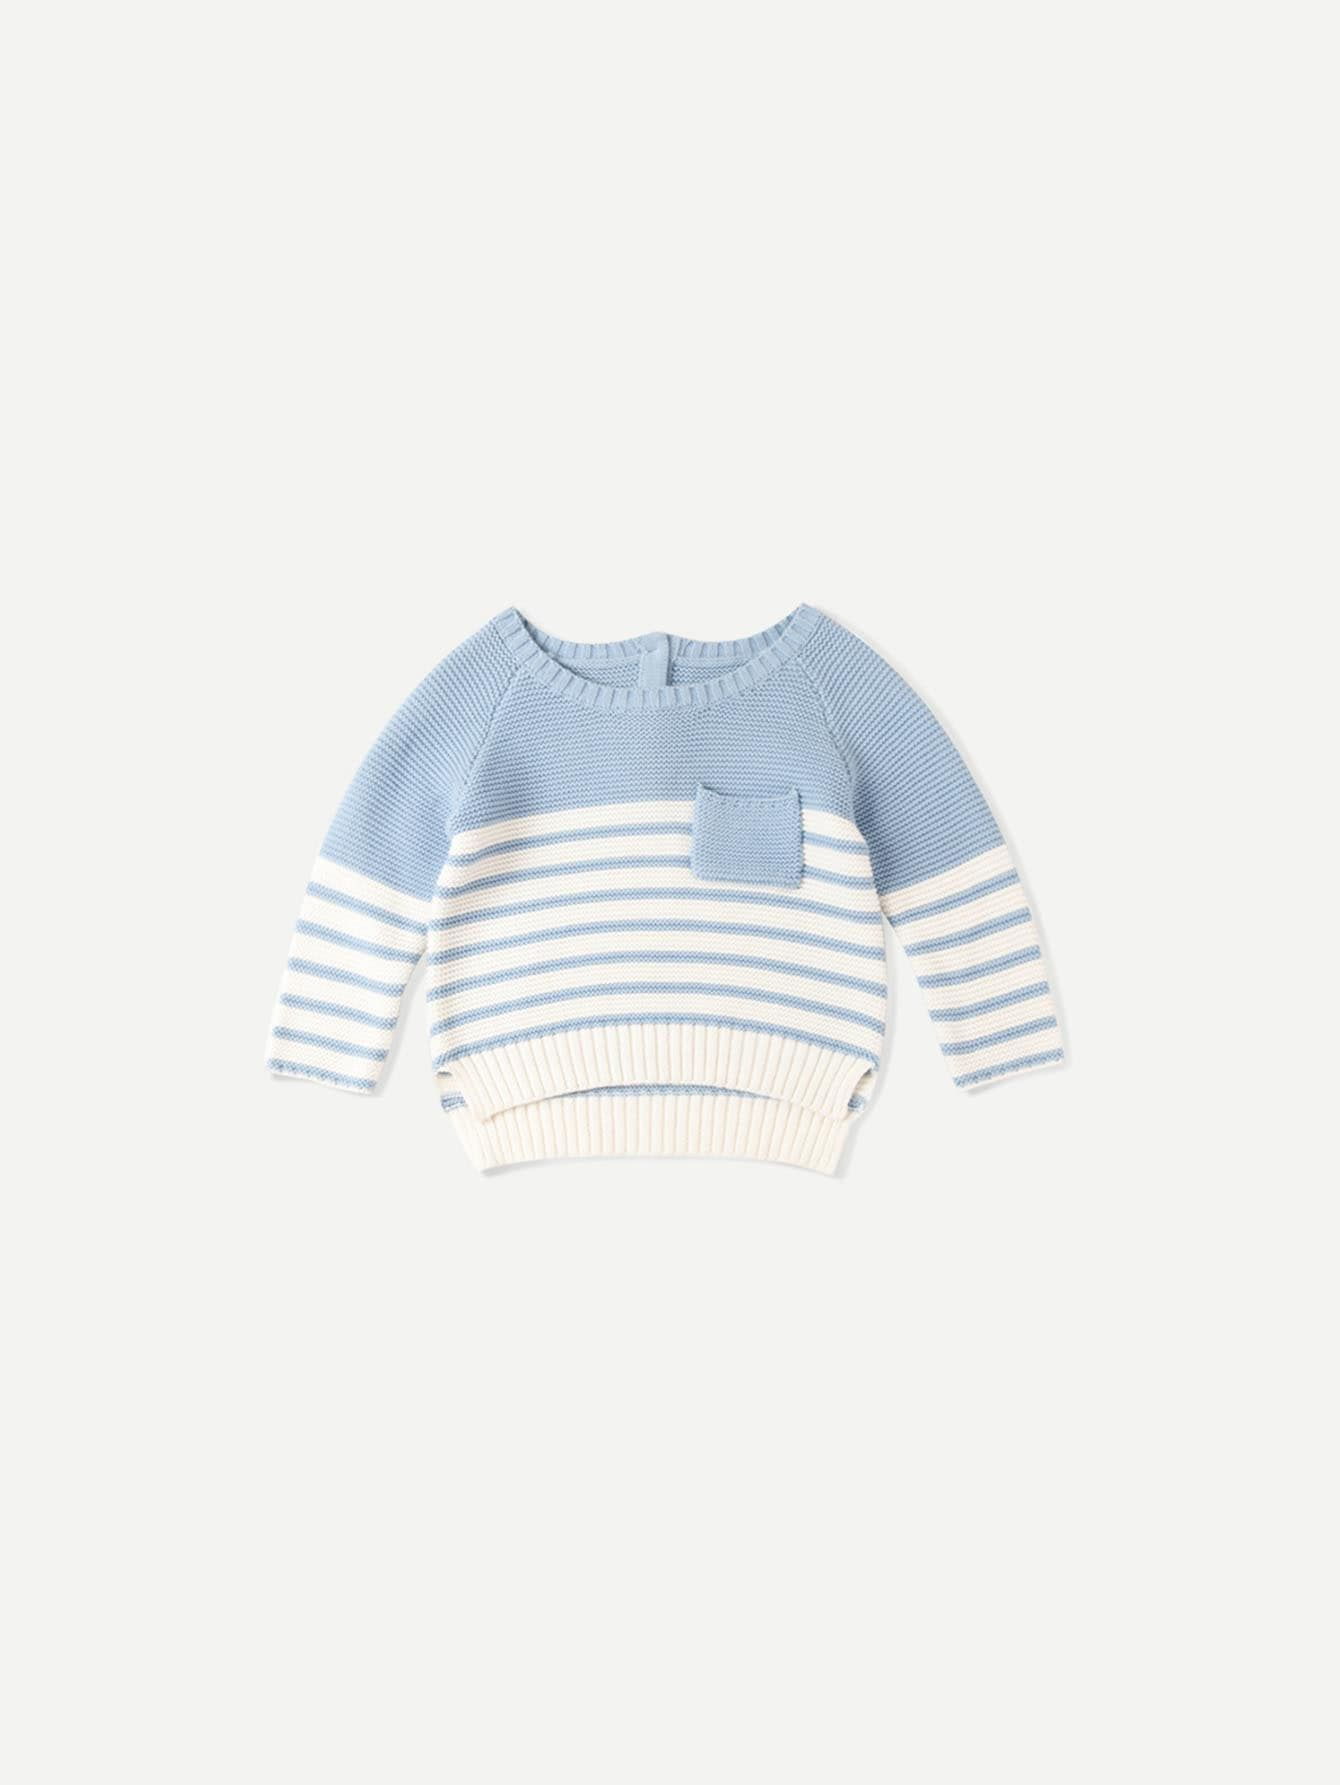 LJYH Girls Pullover Sweater Cotton Sweater Casual Style with Stripe for Boys//Girls 1-8Y